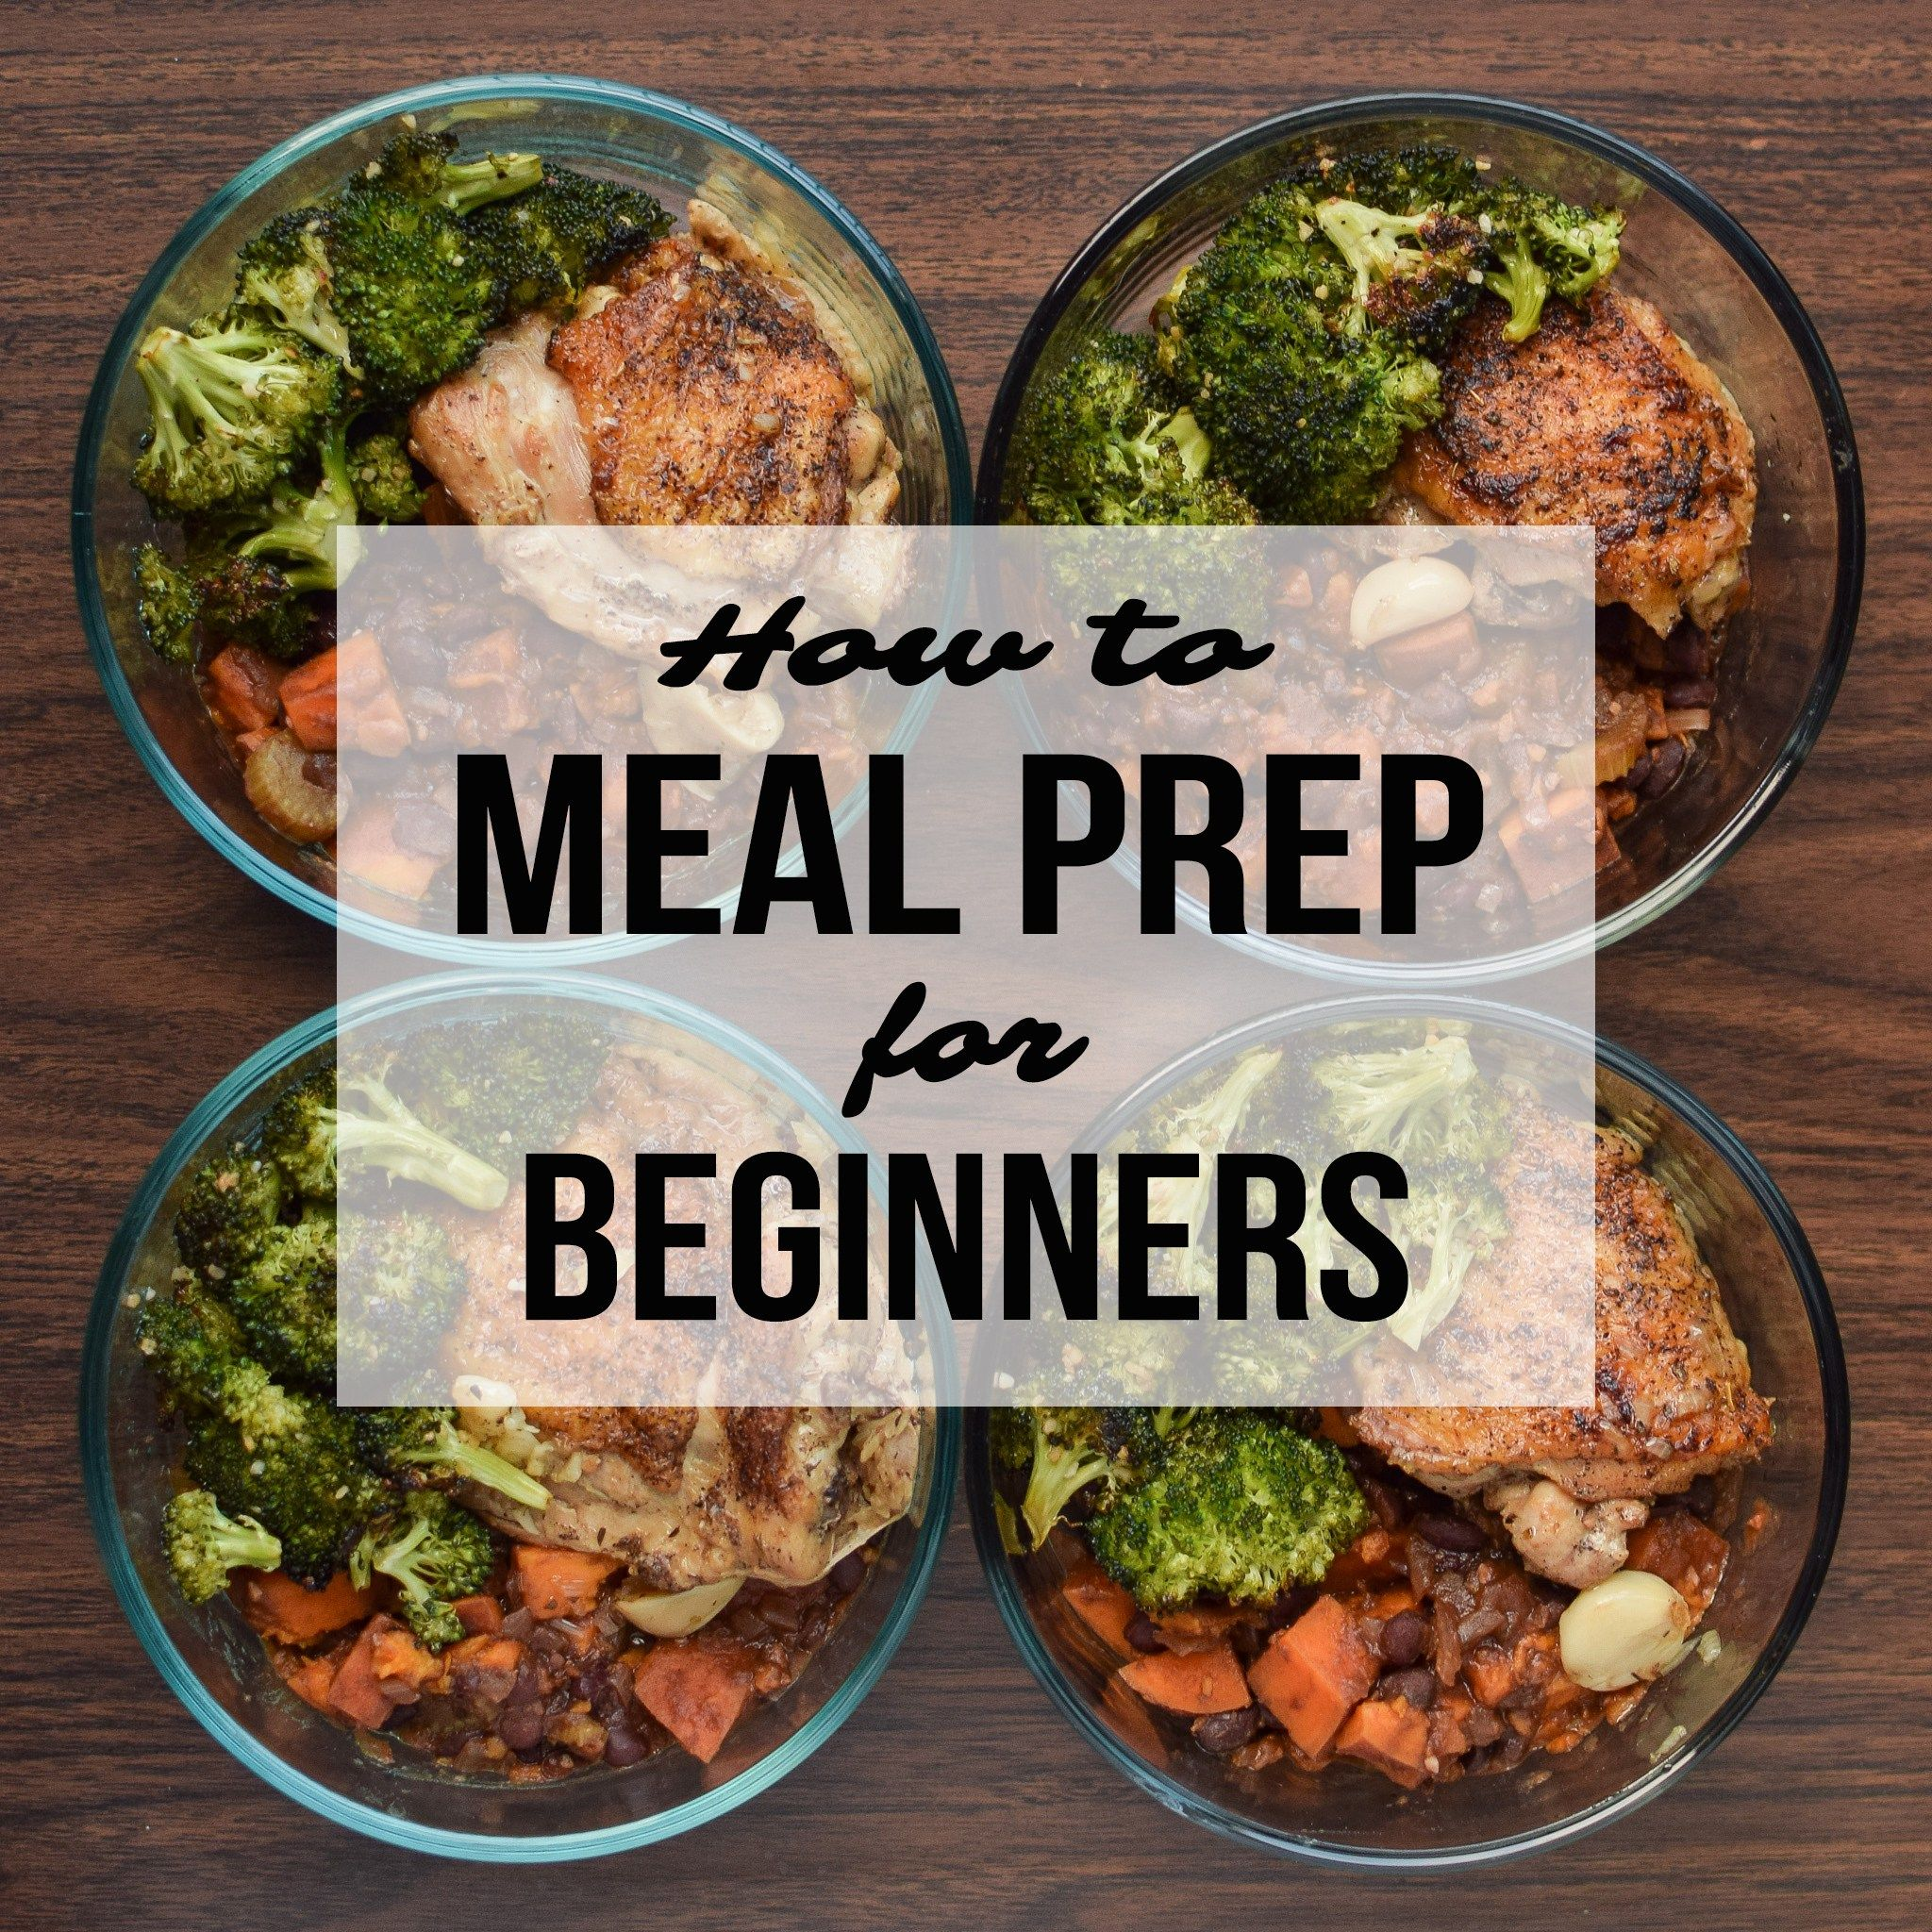 How To Meal Prep For Beginners